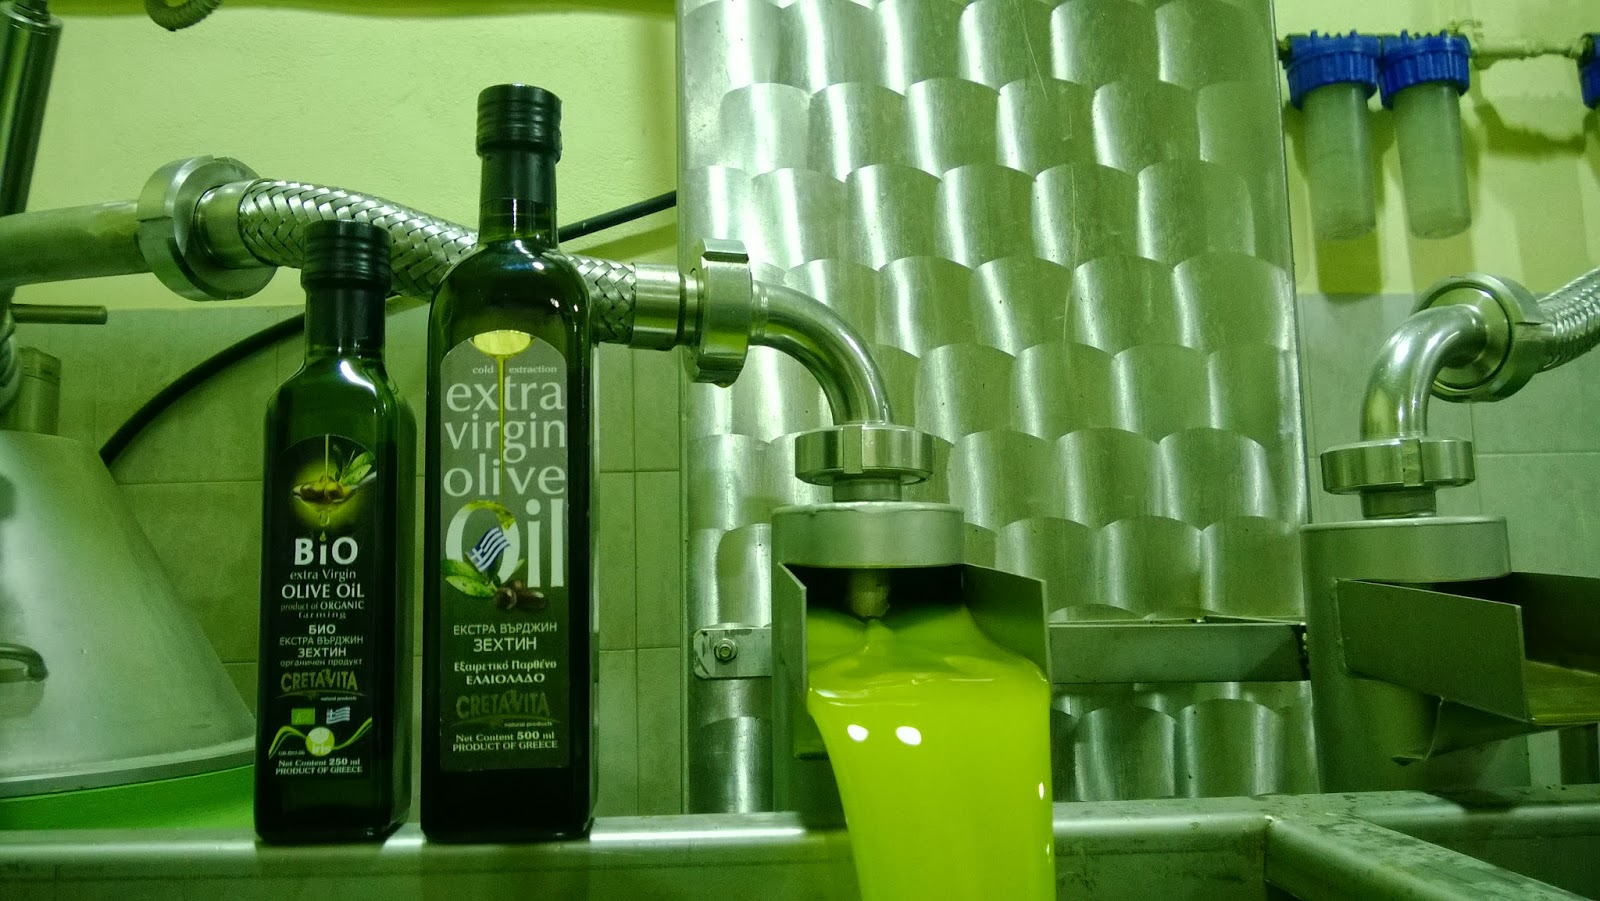 Cretan Extra Virgin Olive Oil